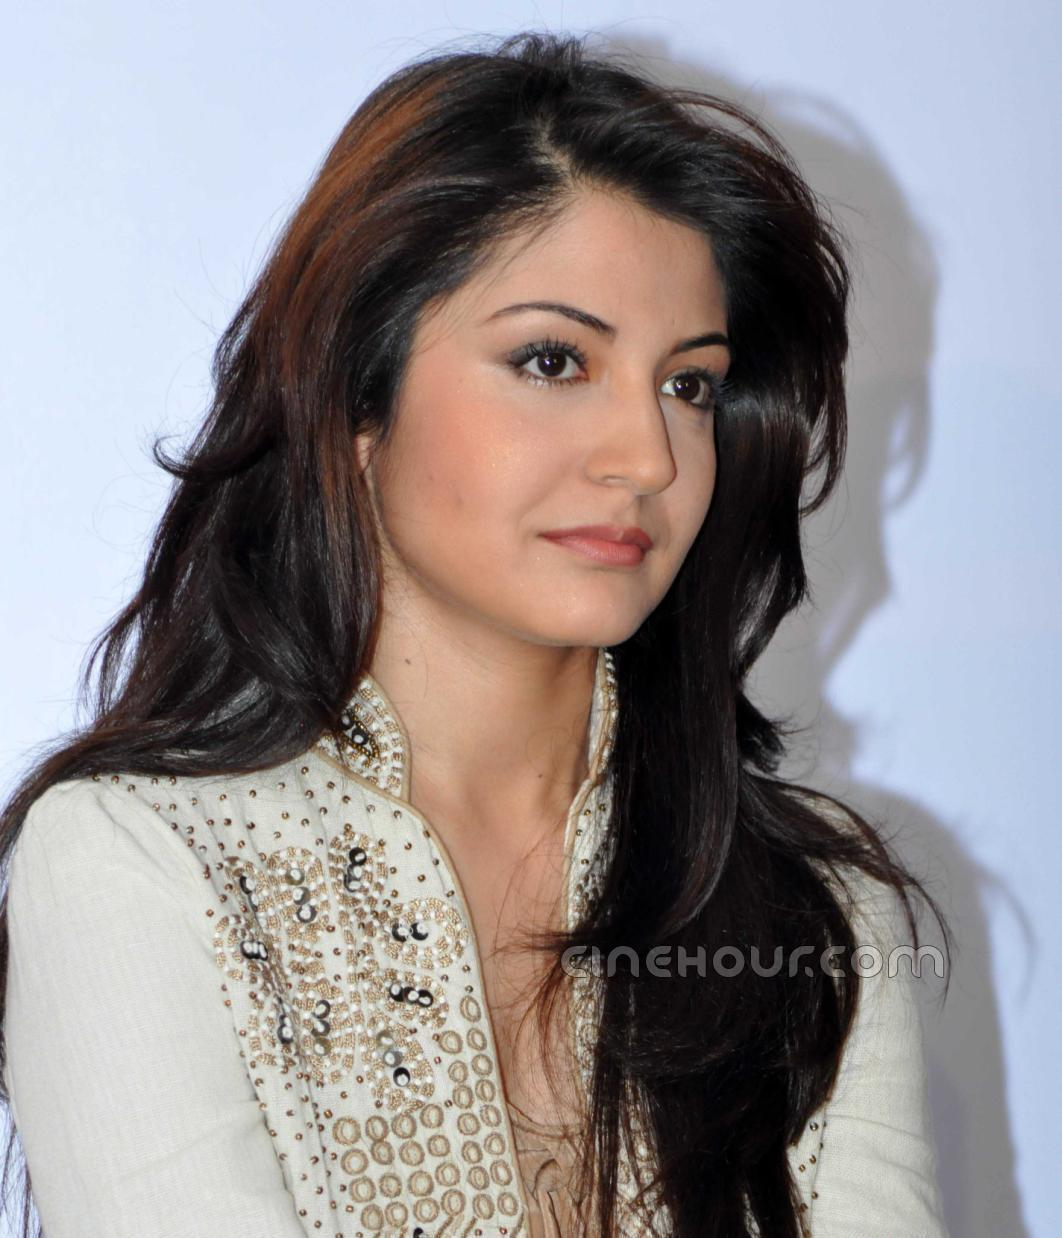 anushka sharma wikianushka sharma 2016, anushka sharma vk, anushka sharma instagram, анушка шарма фильмы, anushka sharma 2017, anushka sharma films, anushka sharma wikipedia, anushka sharma mp3, anushka sharma kimdir, anushka sharma style, anushka sharma movies, anushka sharma kinolari, anushka sharma twitter, anushka sharma photoshoot, anushka sharma filme, anushka sharma and virat kohli, anushka sharma wiki, anushka sharma performance 2016, anushka sharma santabanta, anushka sharma instagram pikore